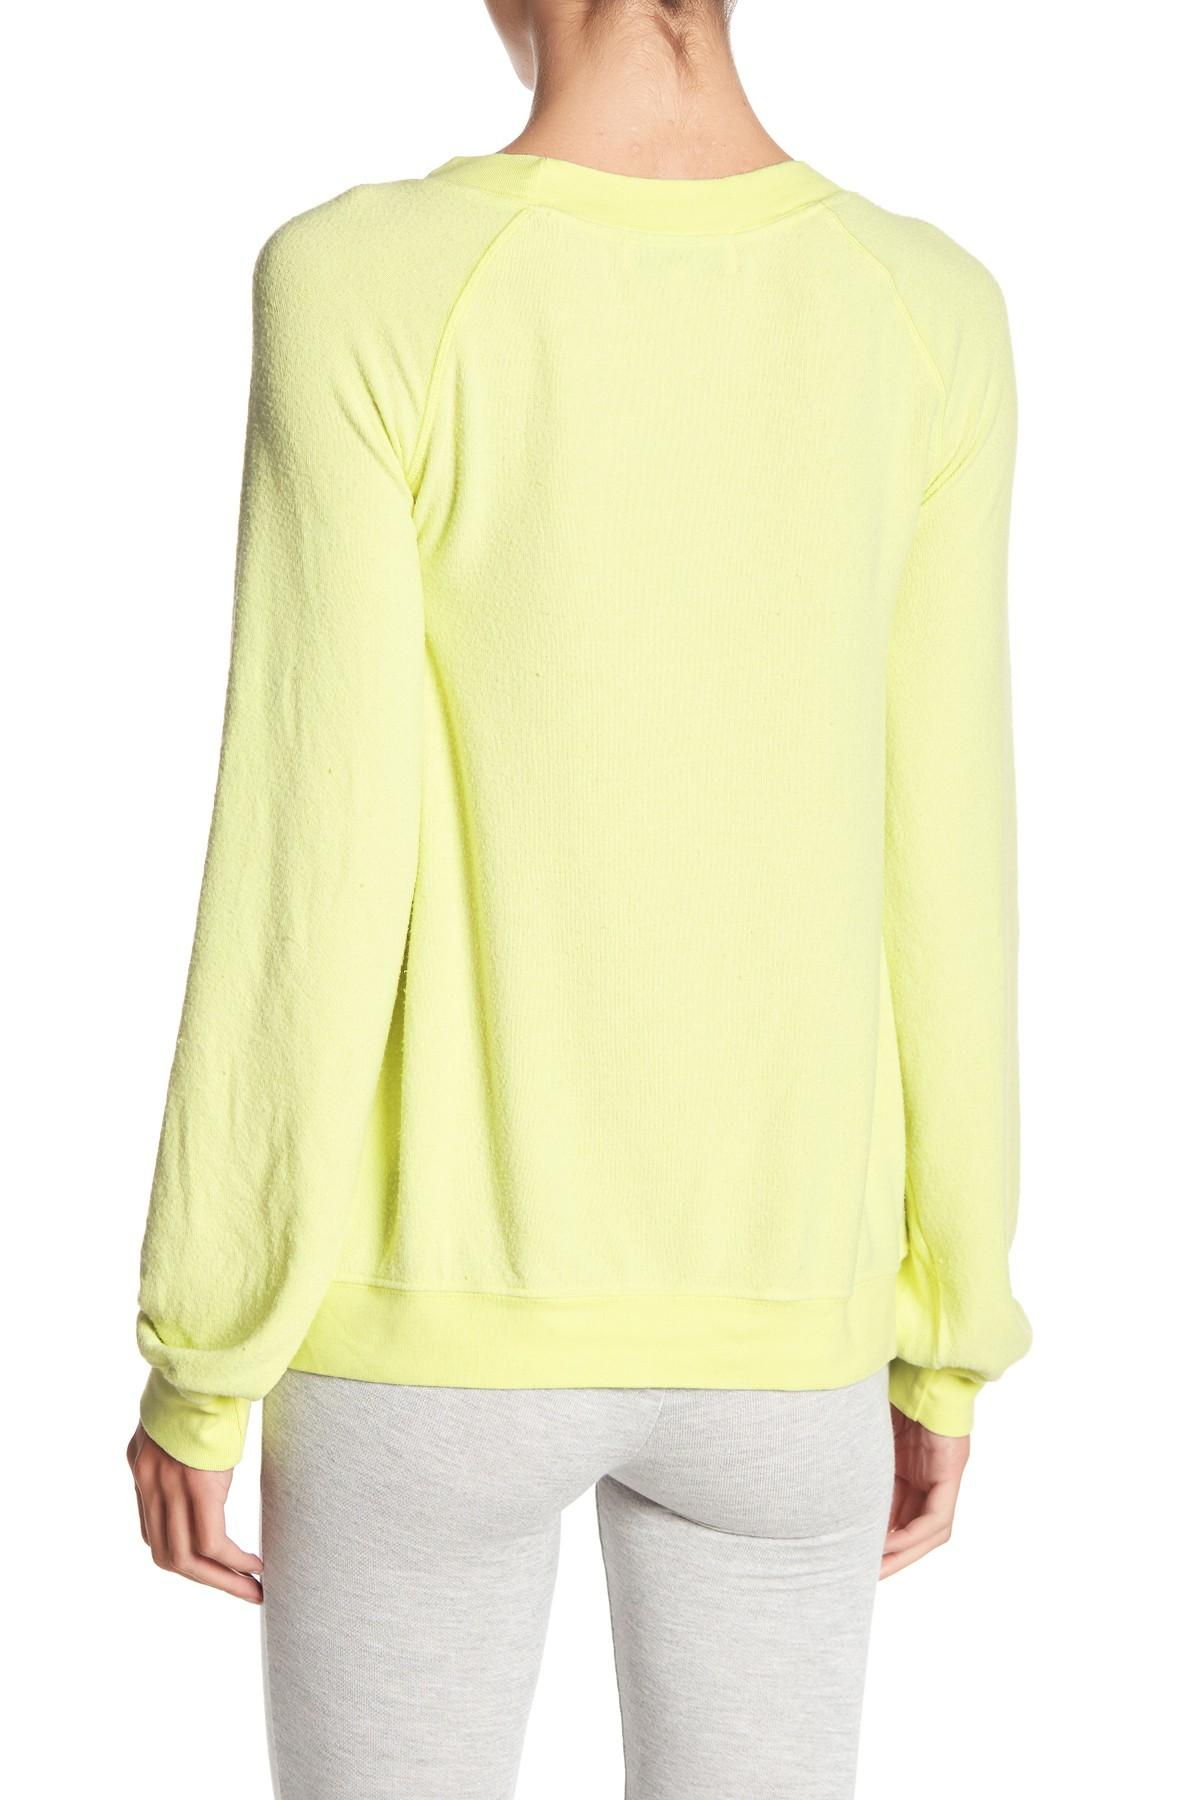 006601a926 Wildfox Sleepy Smile Sommers Sweater in Yellow - Lyst